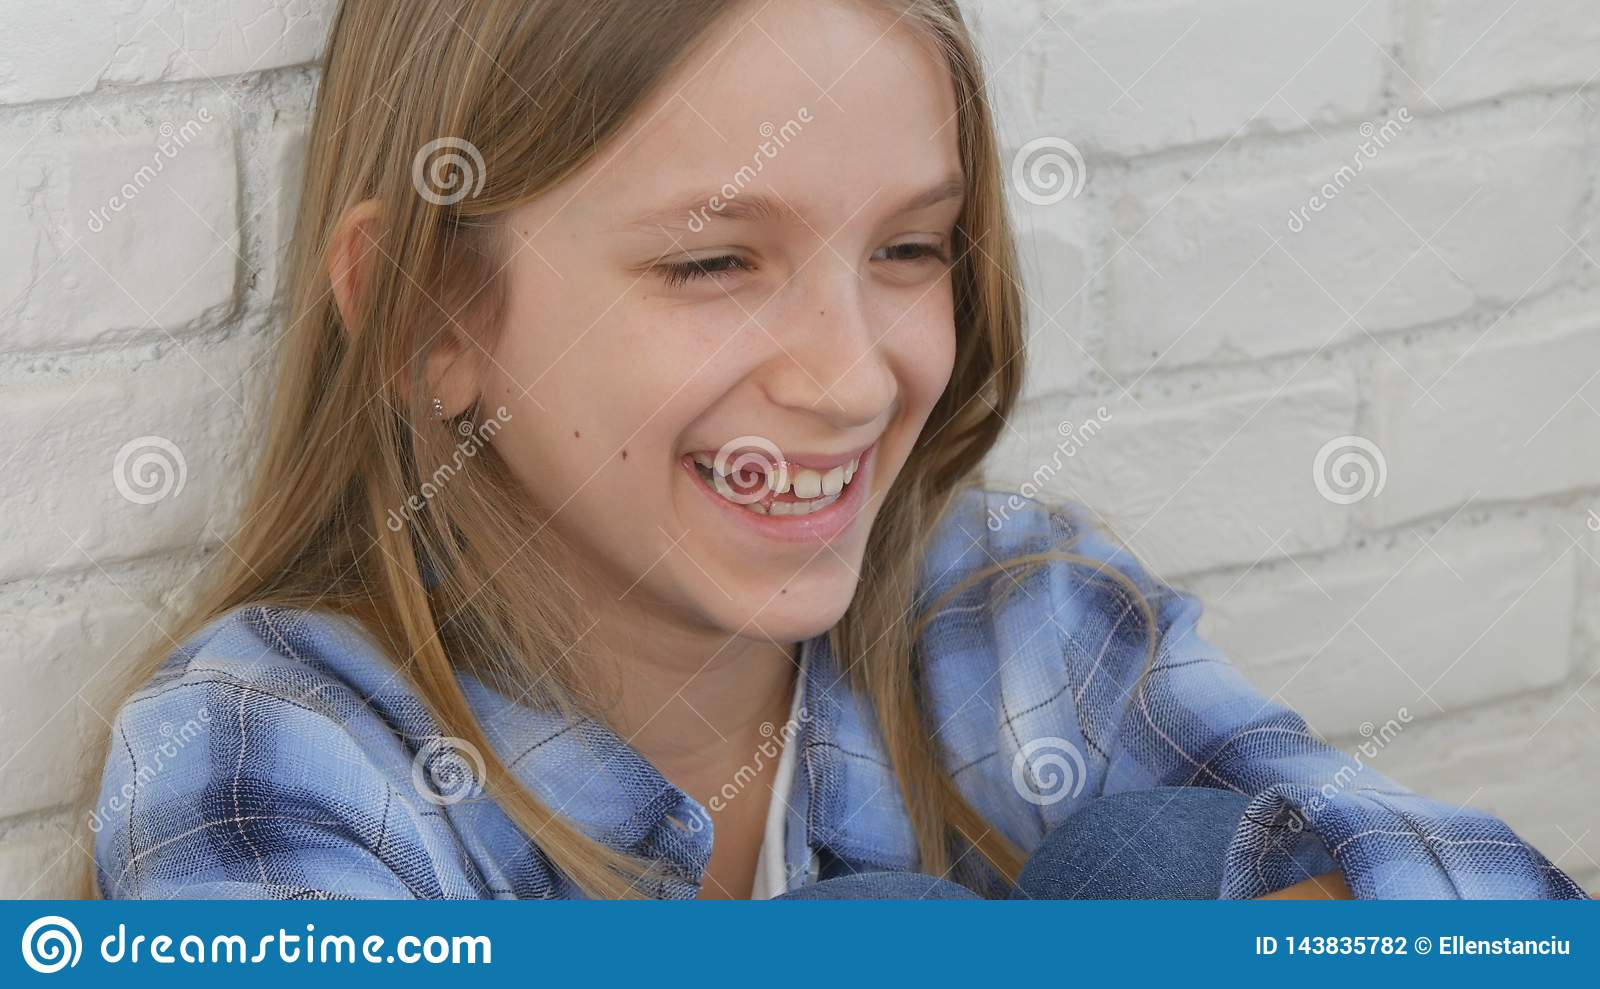 Thoughtful Child Portrait, Laughing Kid Face Looking in Camera Blonde Bored Girl